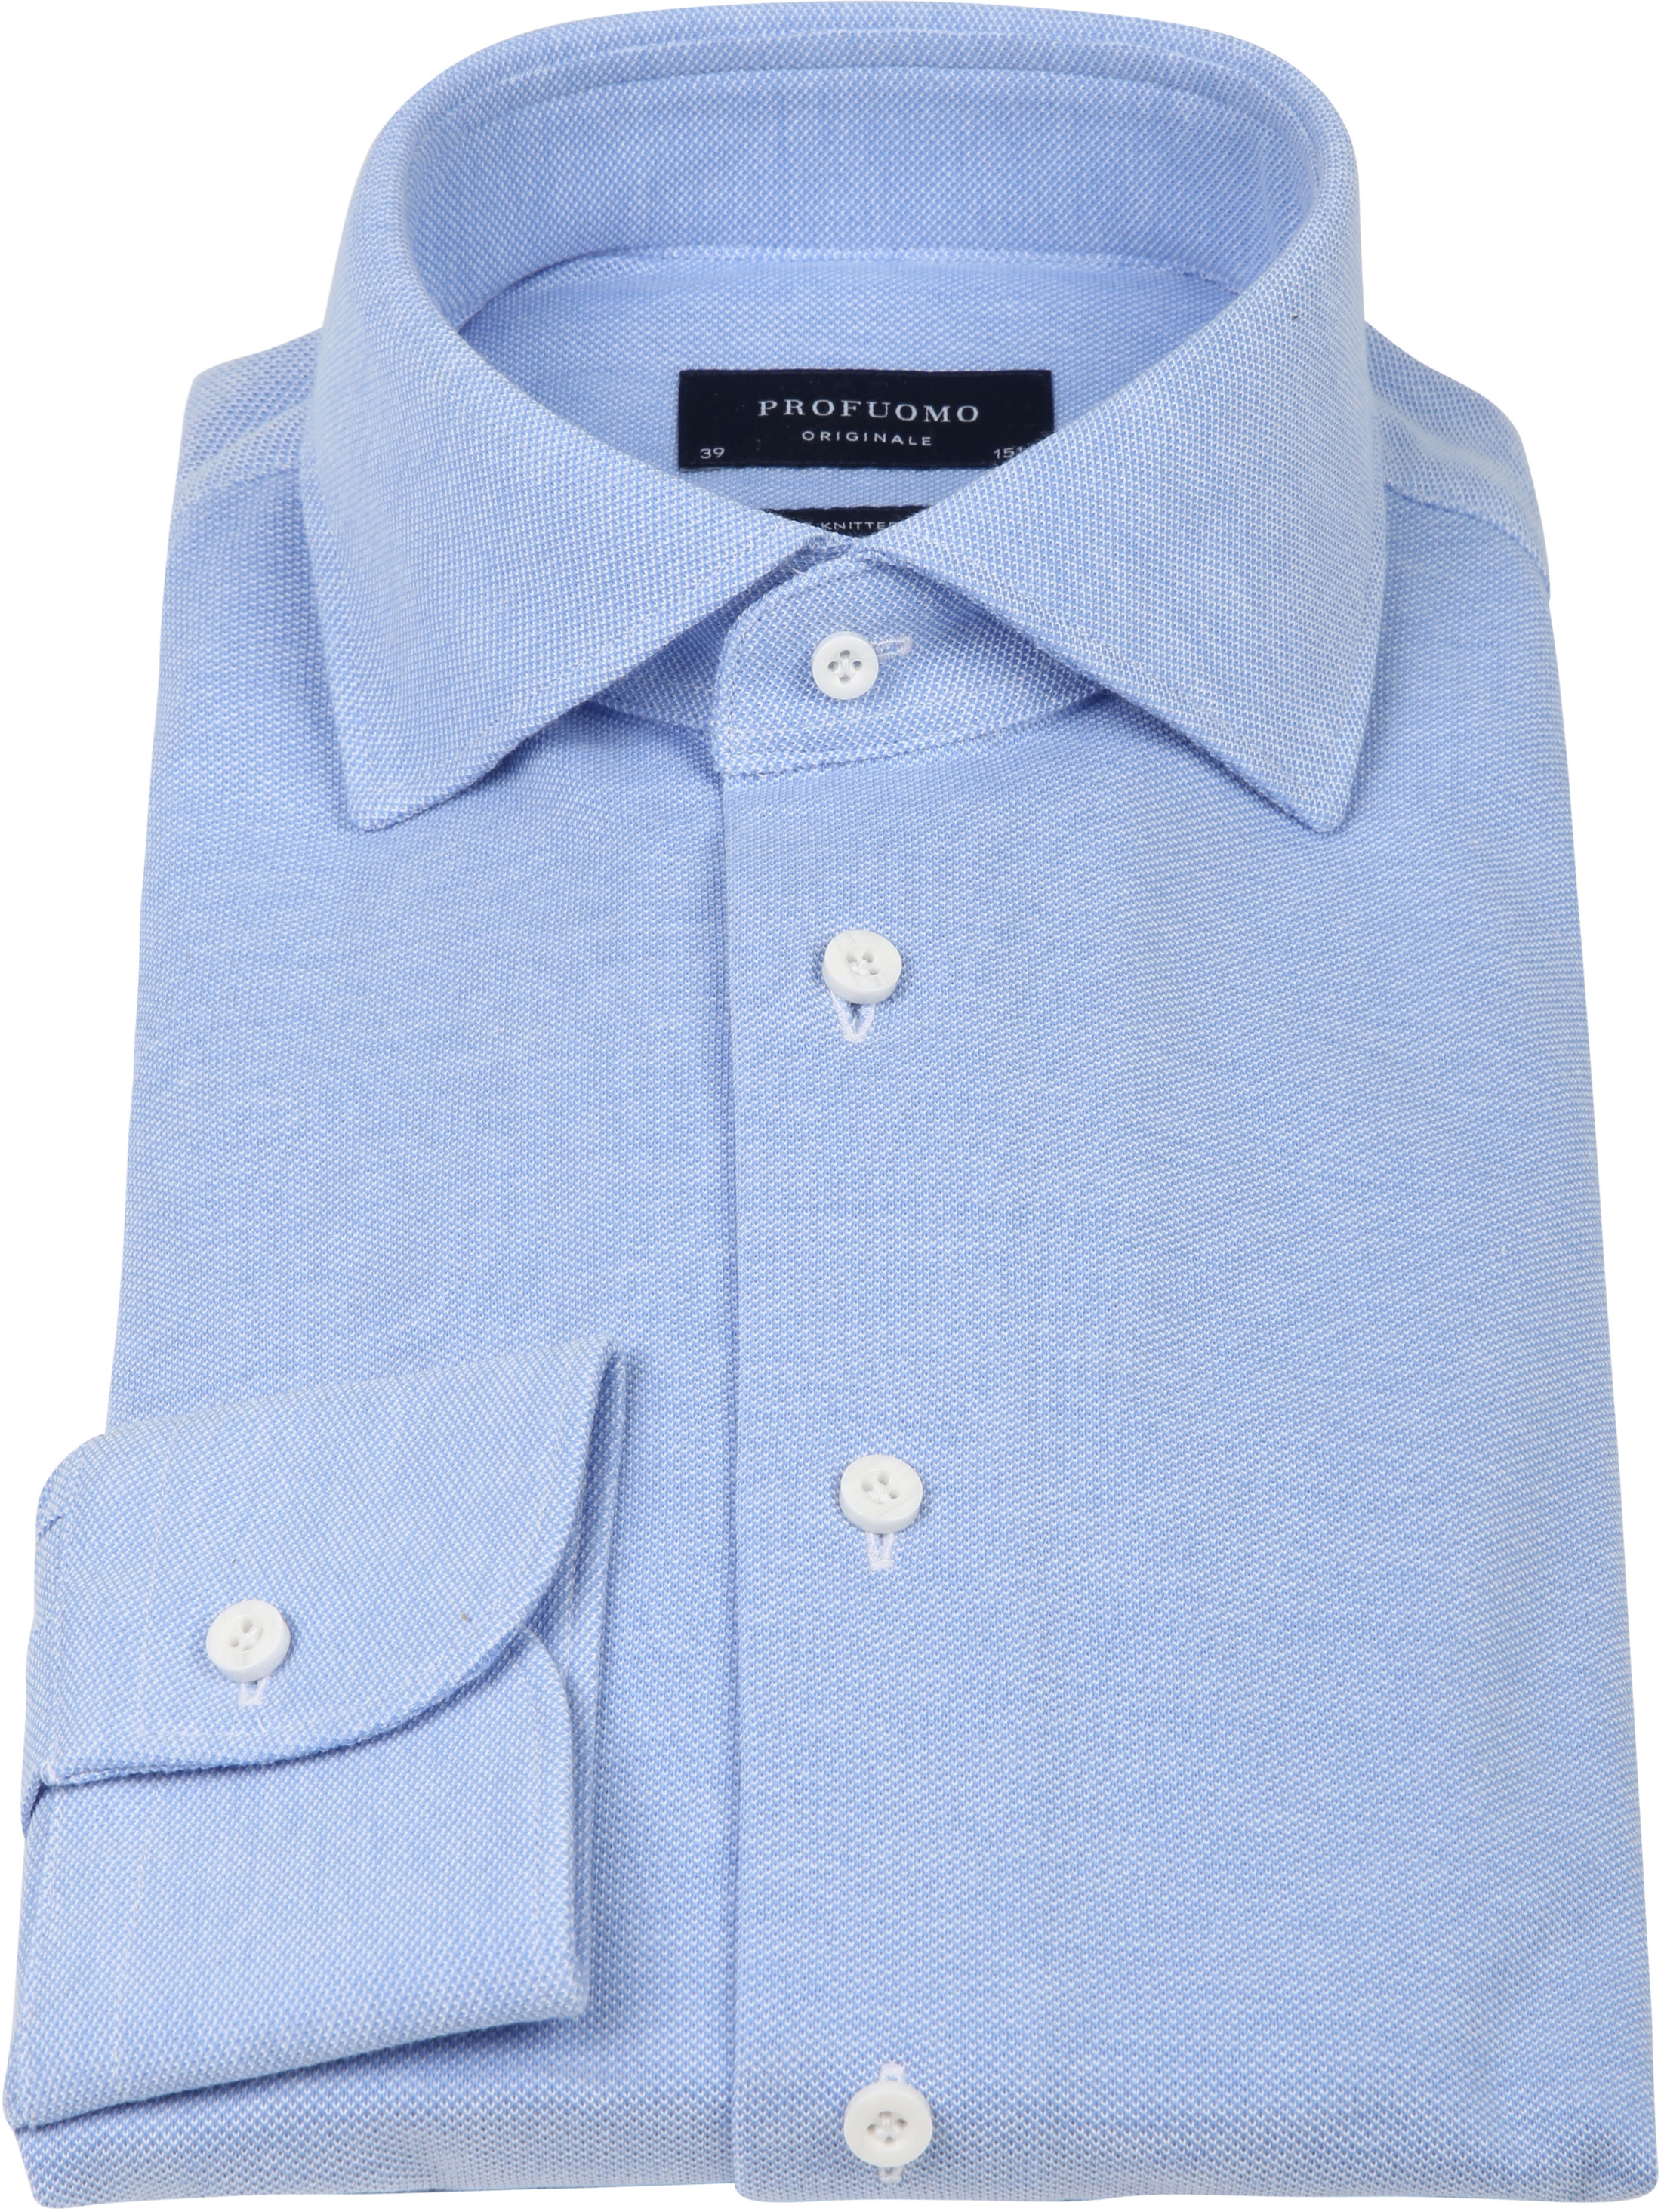 Profuomo Shirt Knitted Slim Fit Blue foto 2